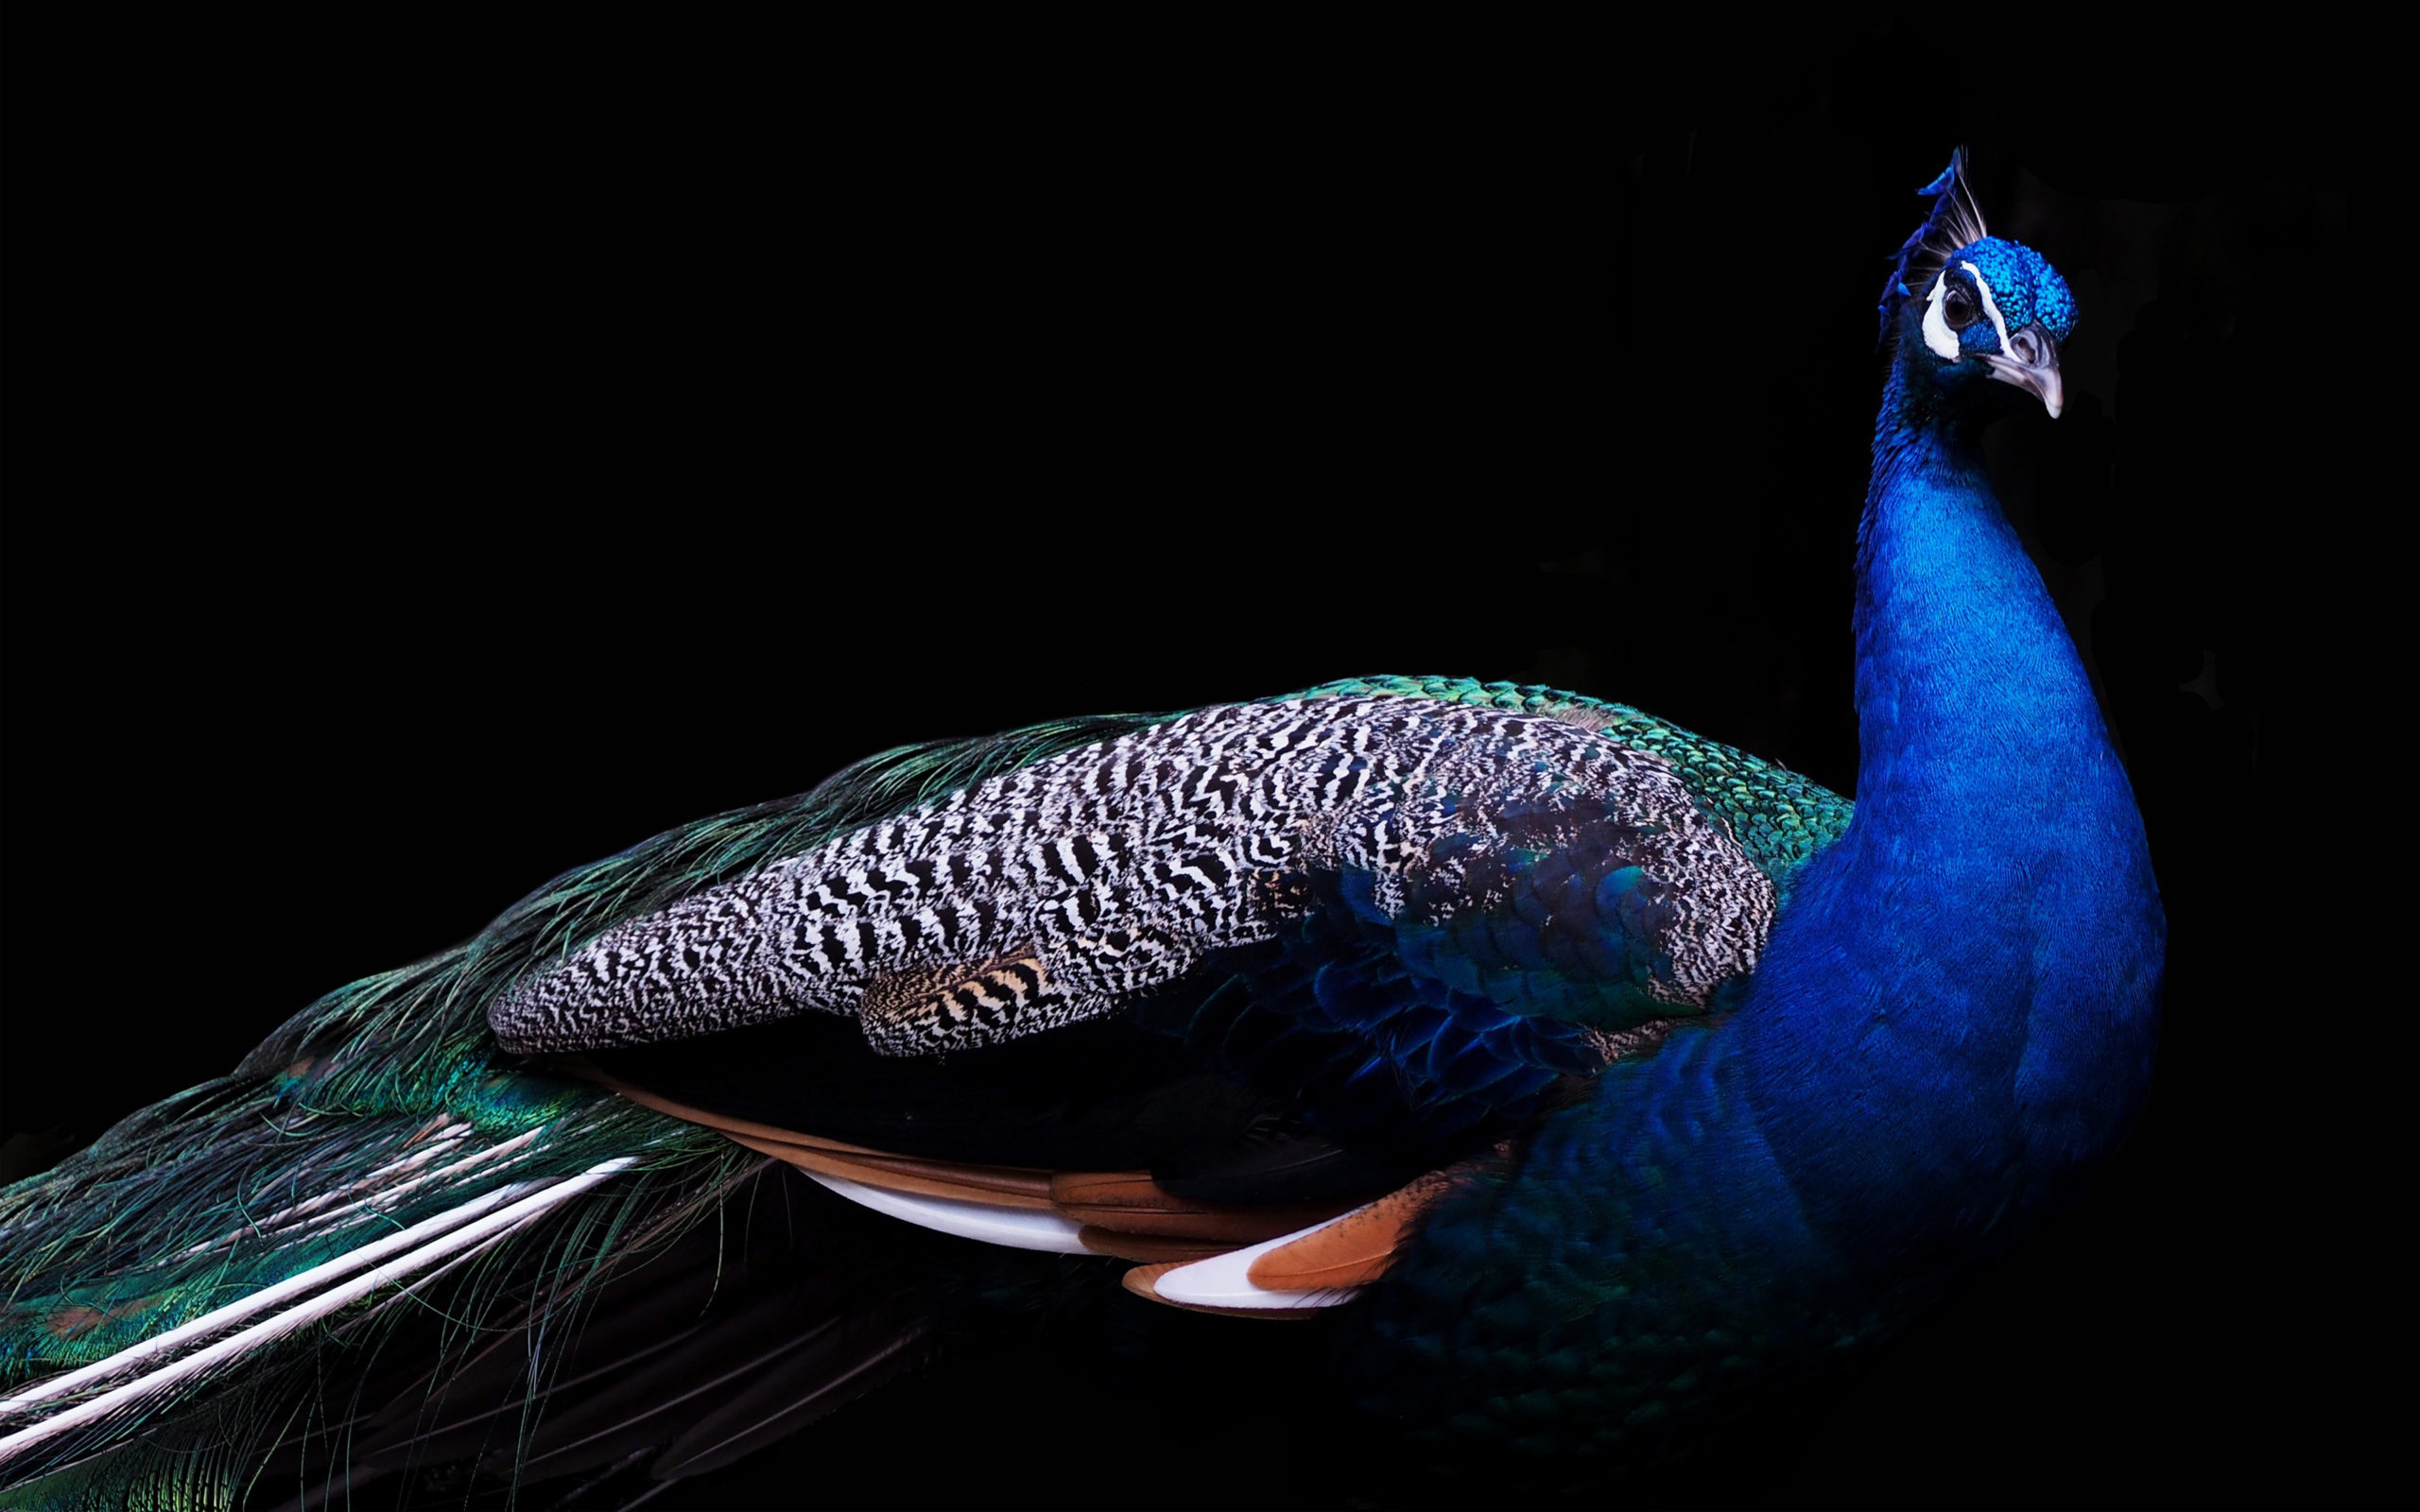 download peacock images